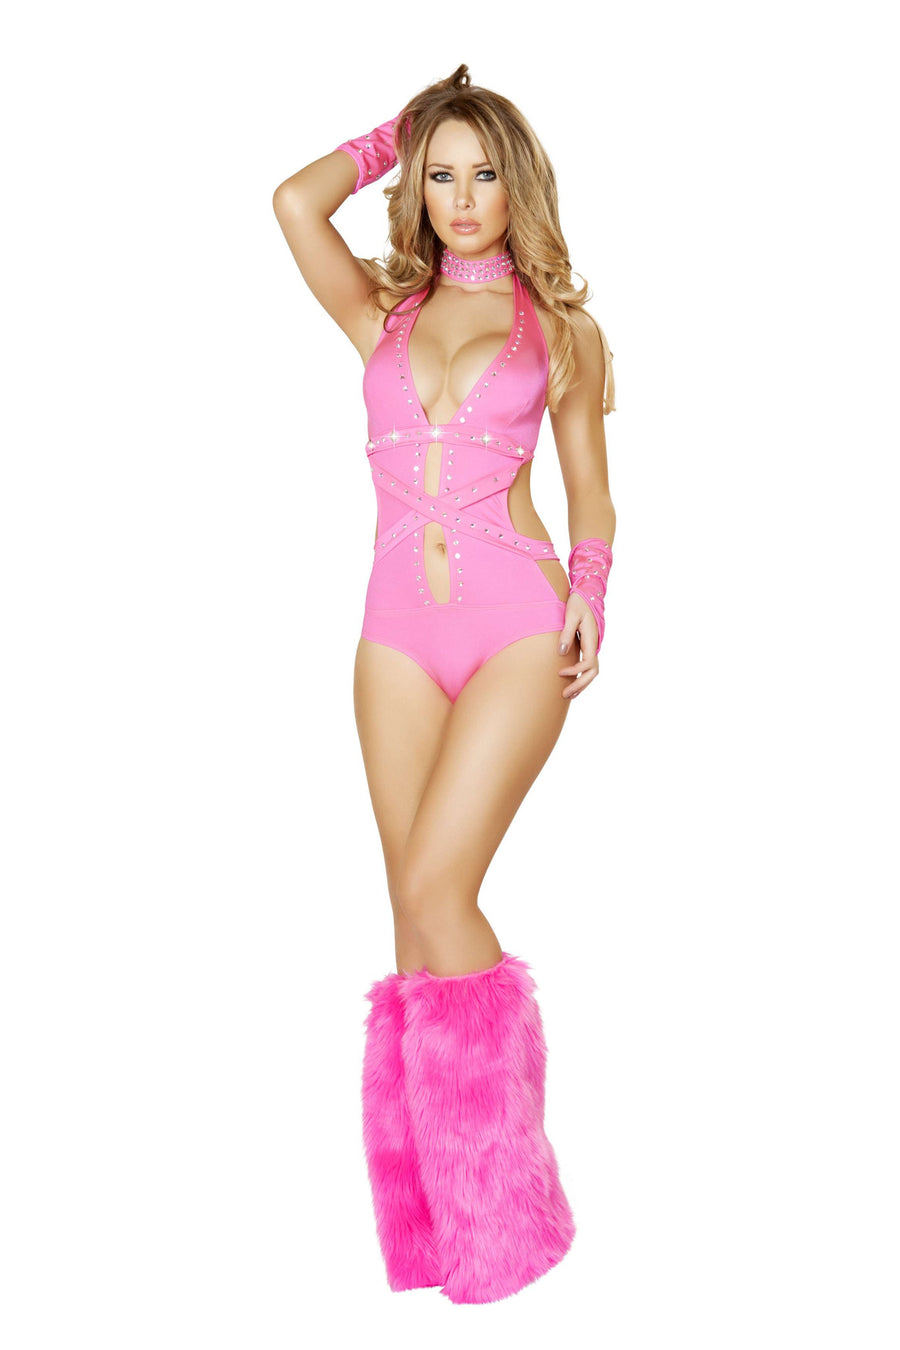 1Pc Rhinestone Romper w/Strap and Mirror Detail - Hot Pink